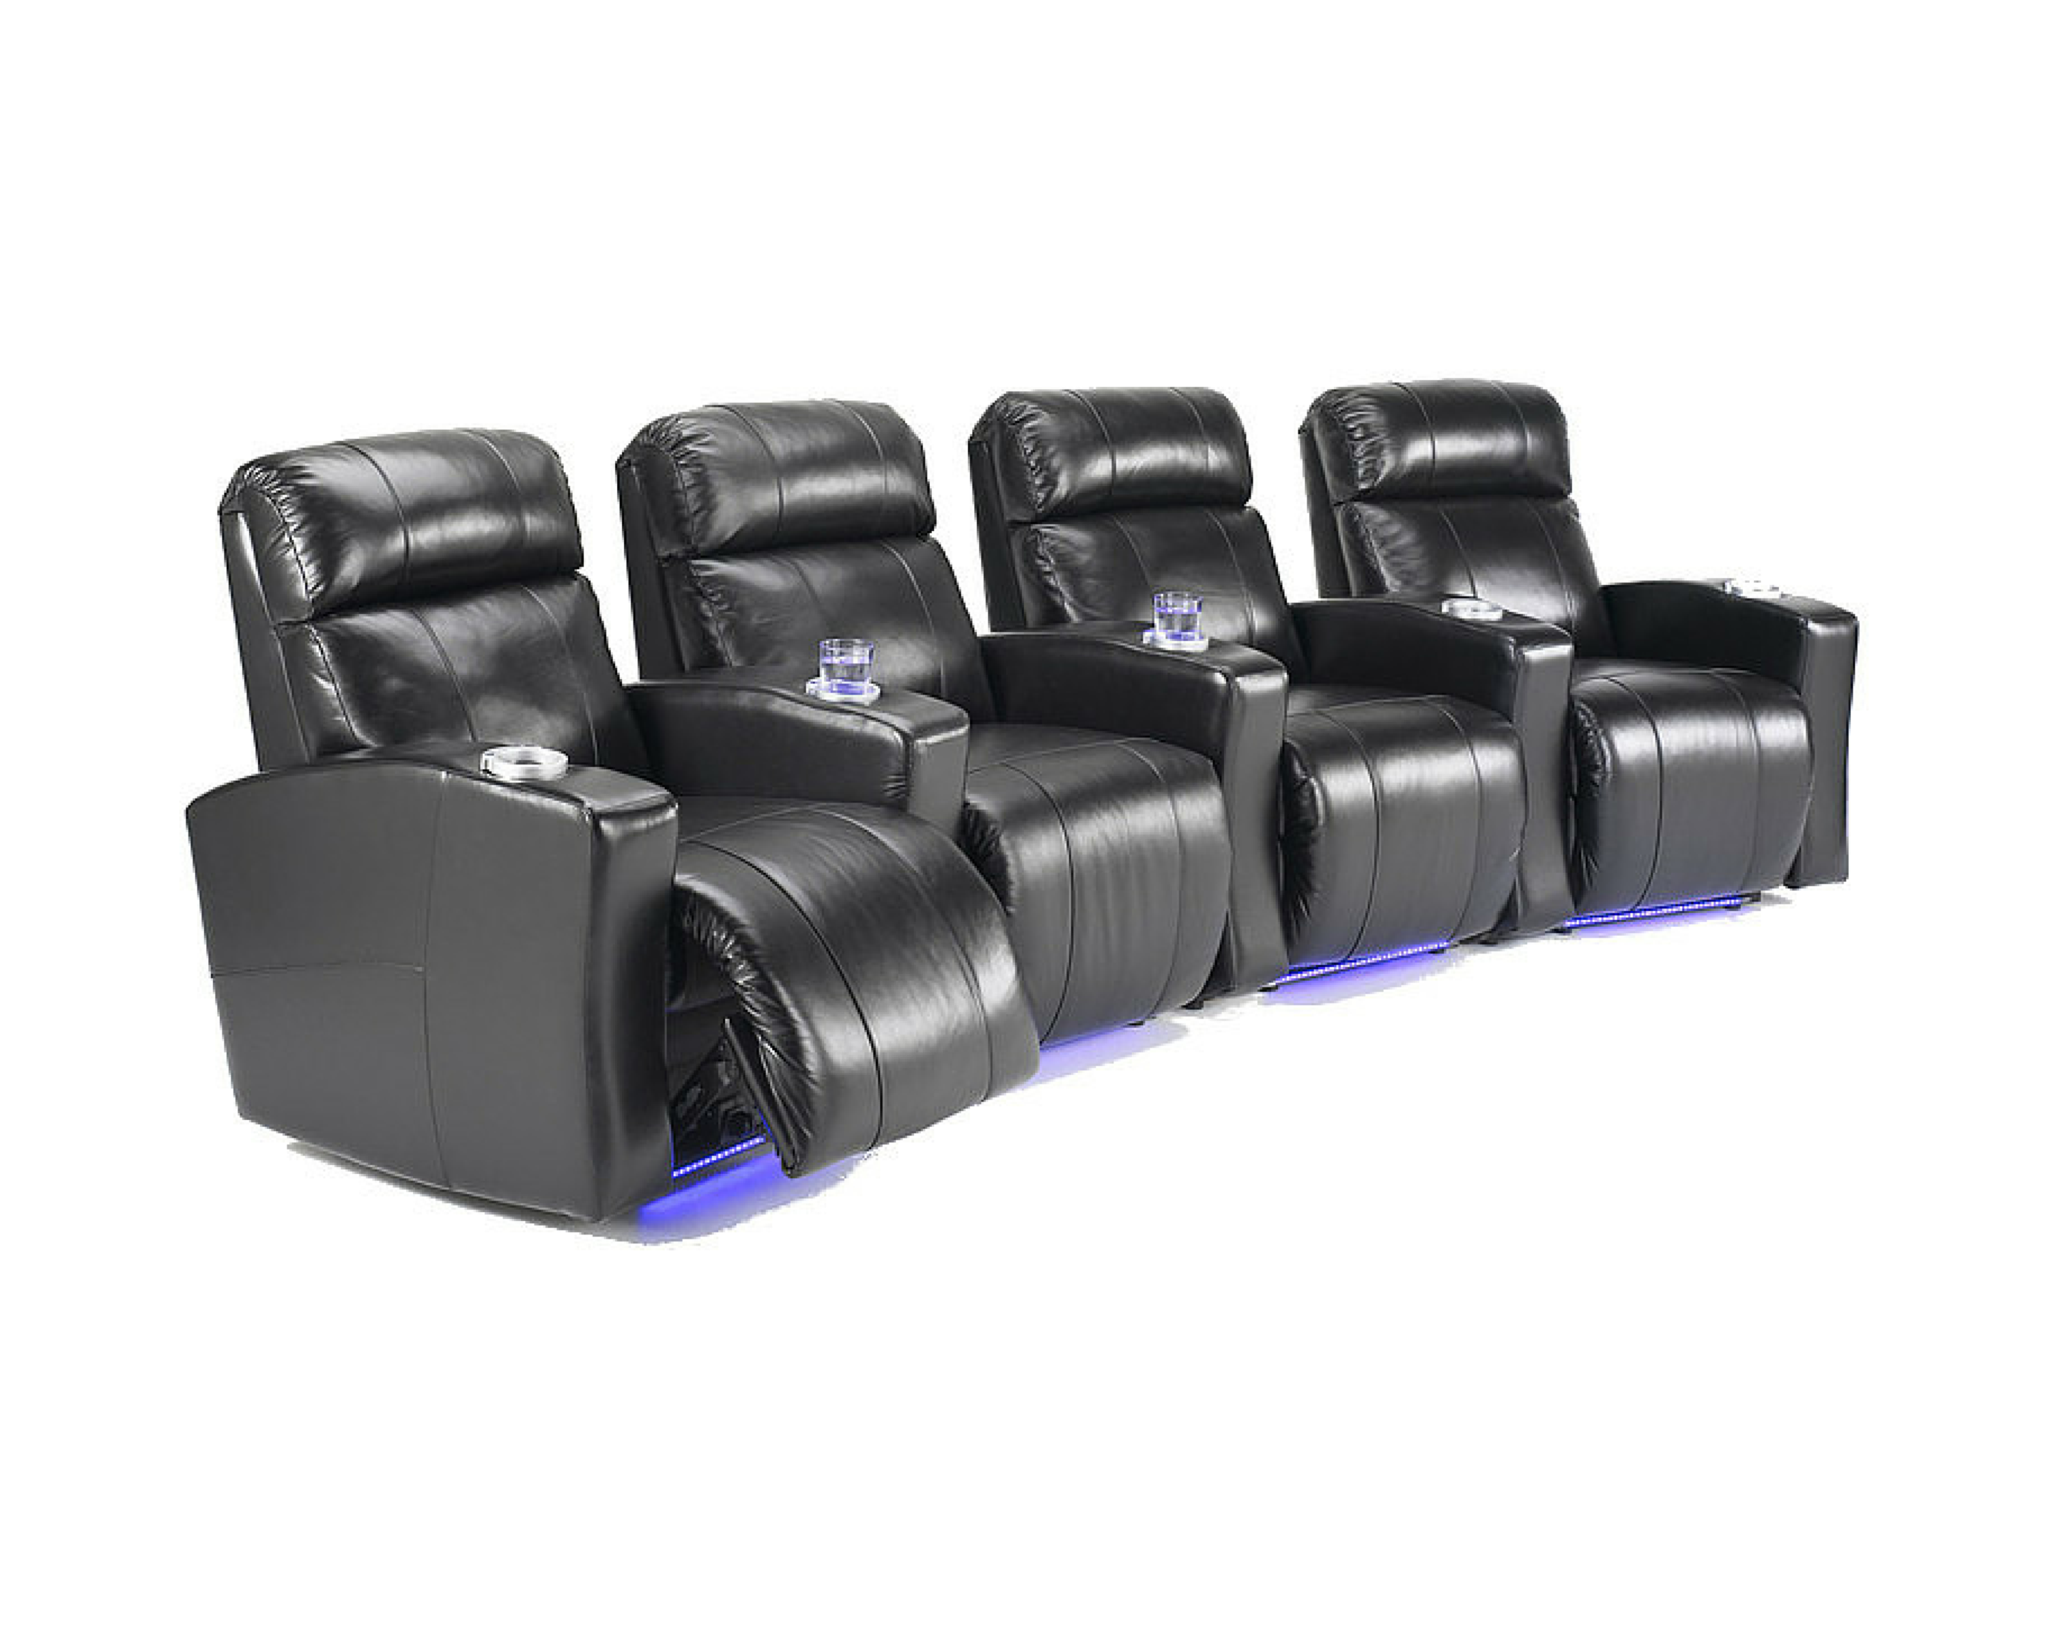 Curved Home Theatre Seating Cinema Studios Wow Home Theater Seating Theater Seating Home